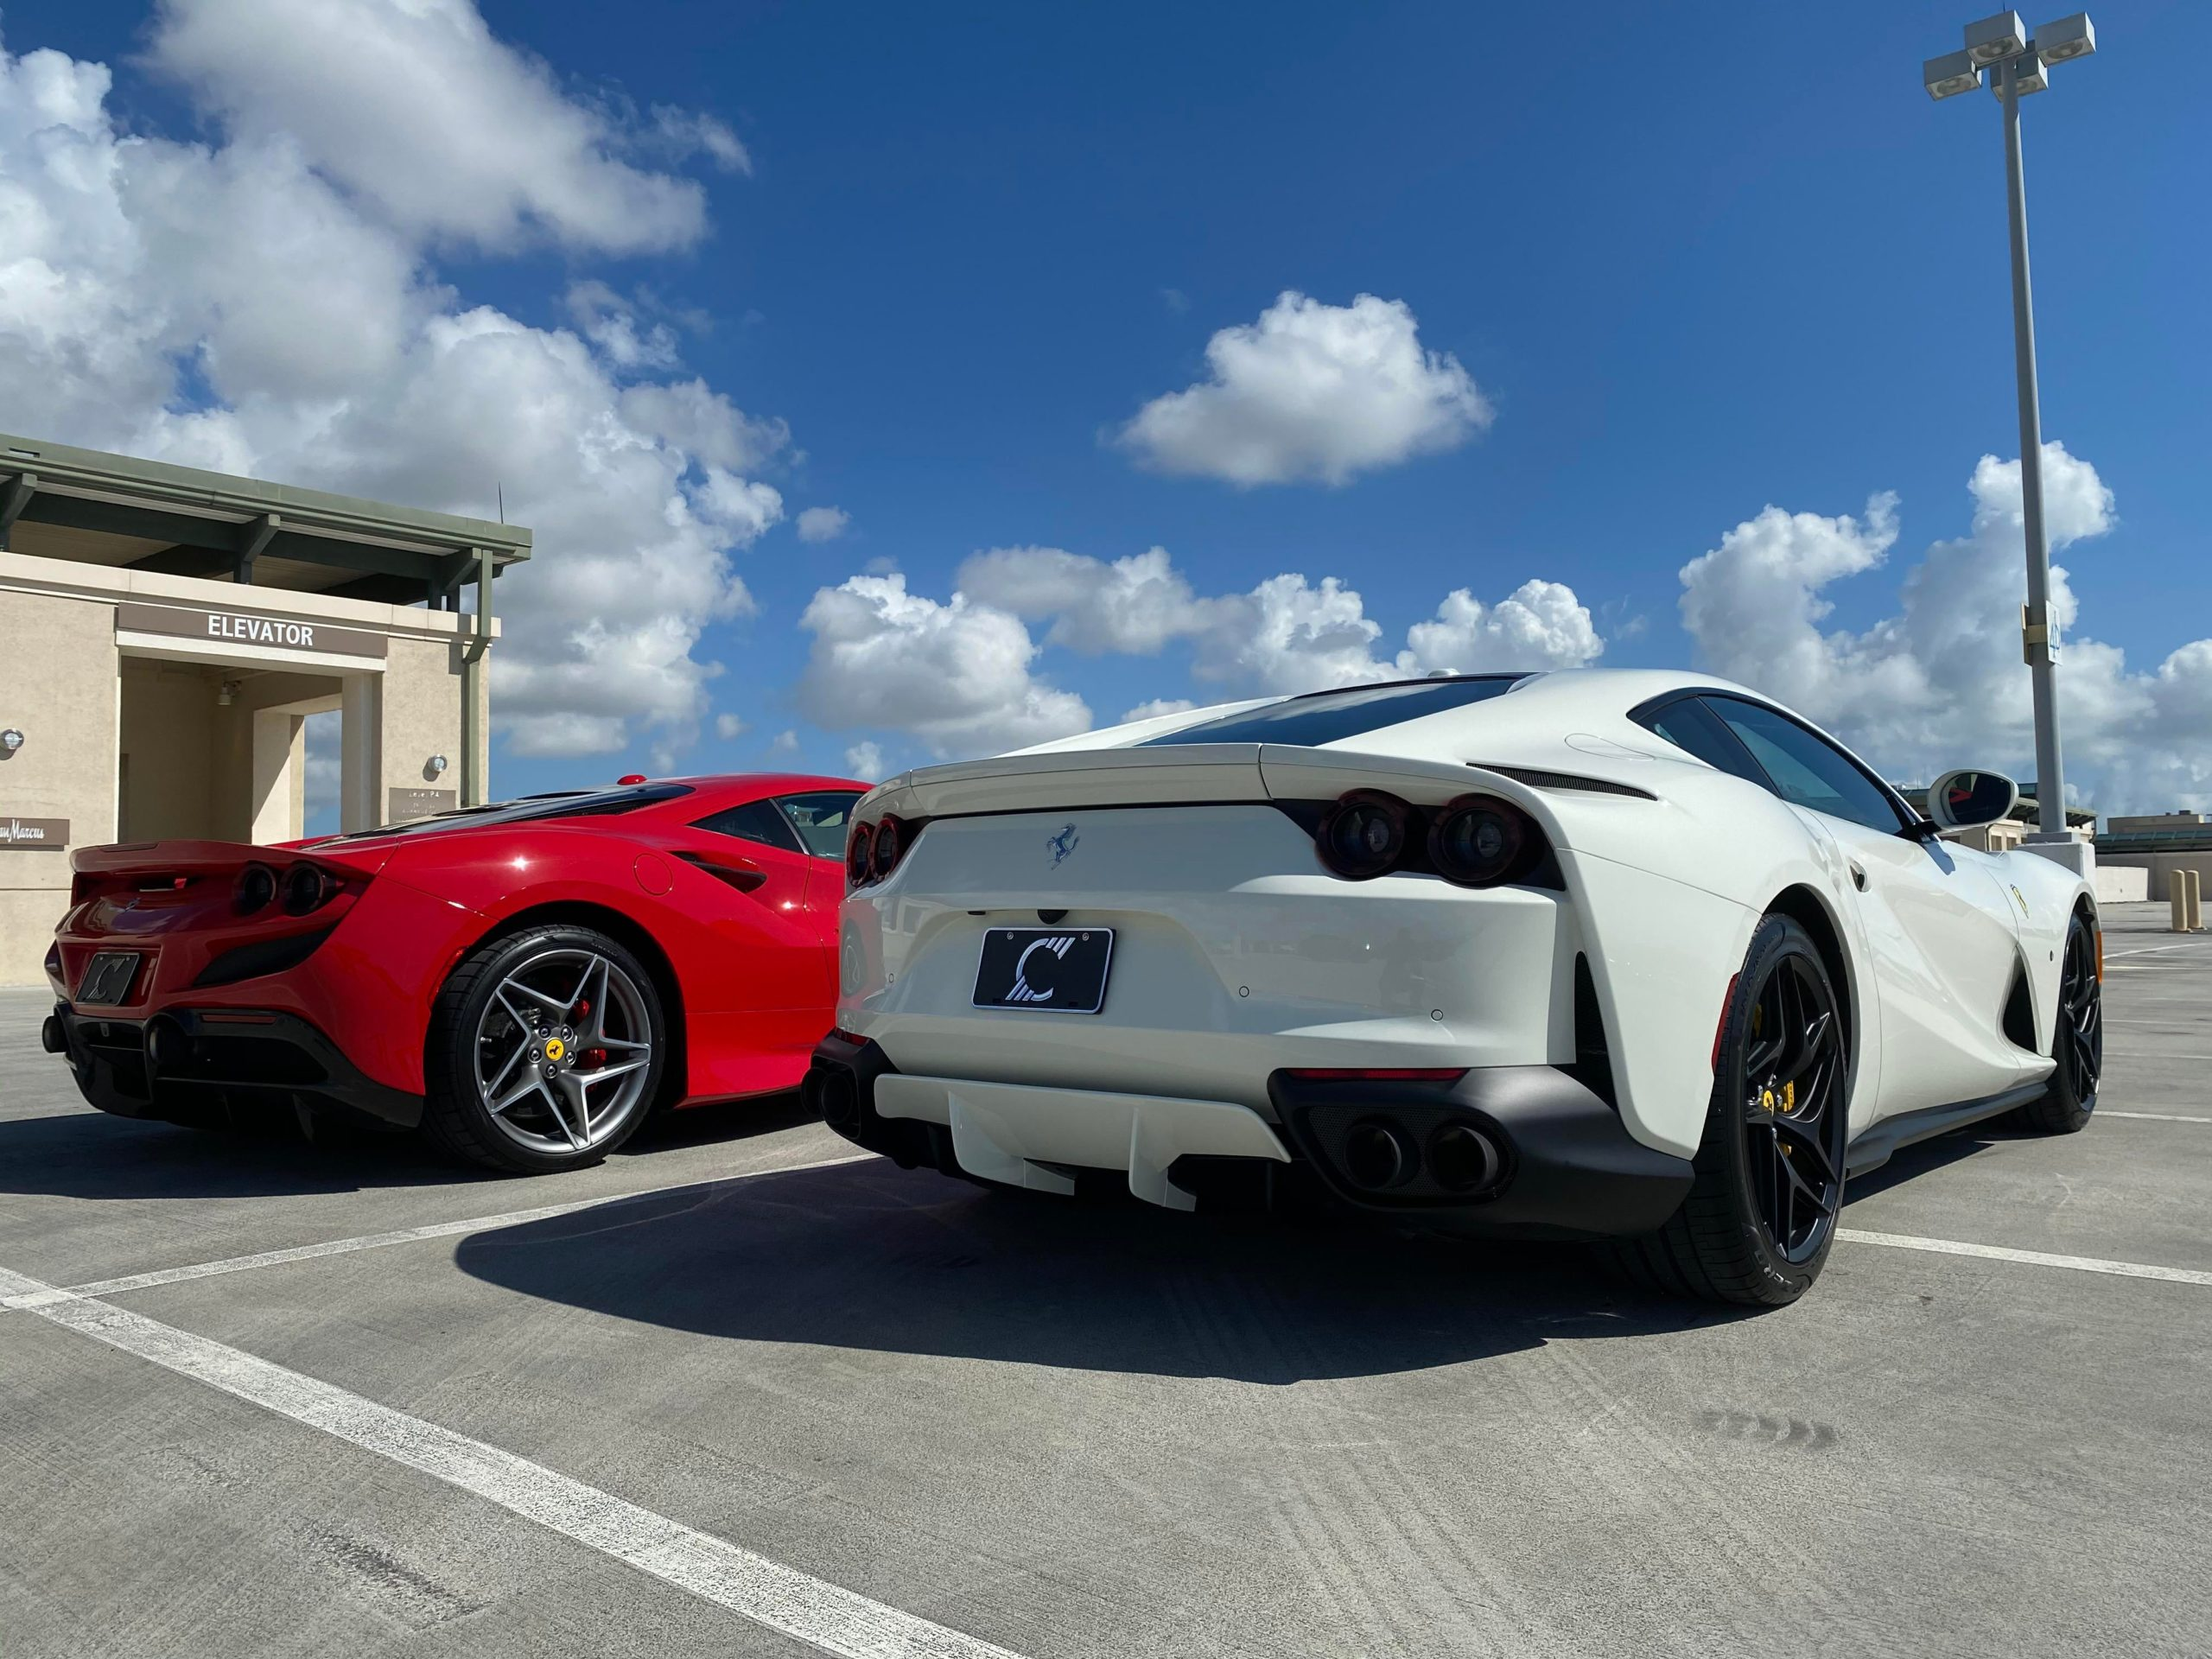 2020 F8 Tributo and 2019 812 Superfast